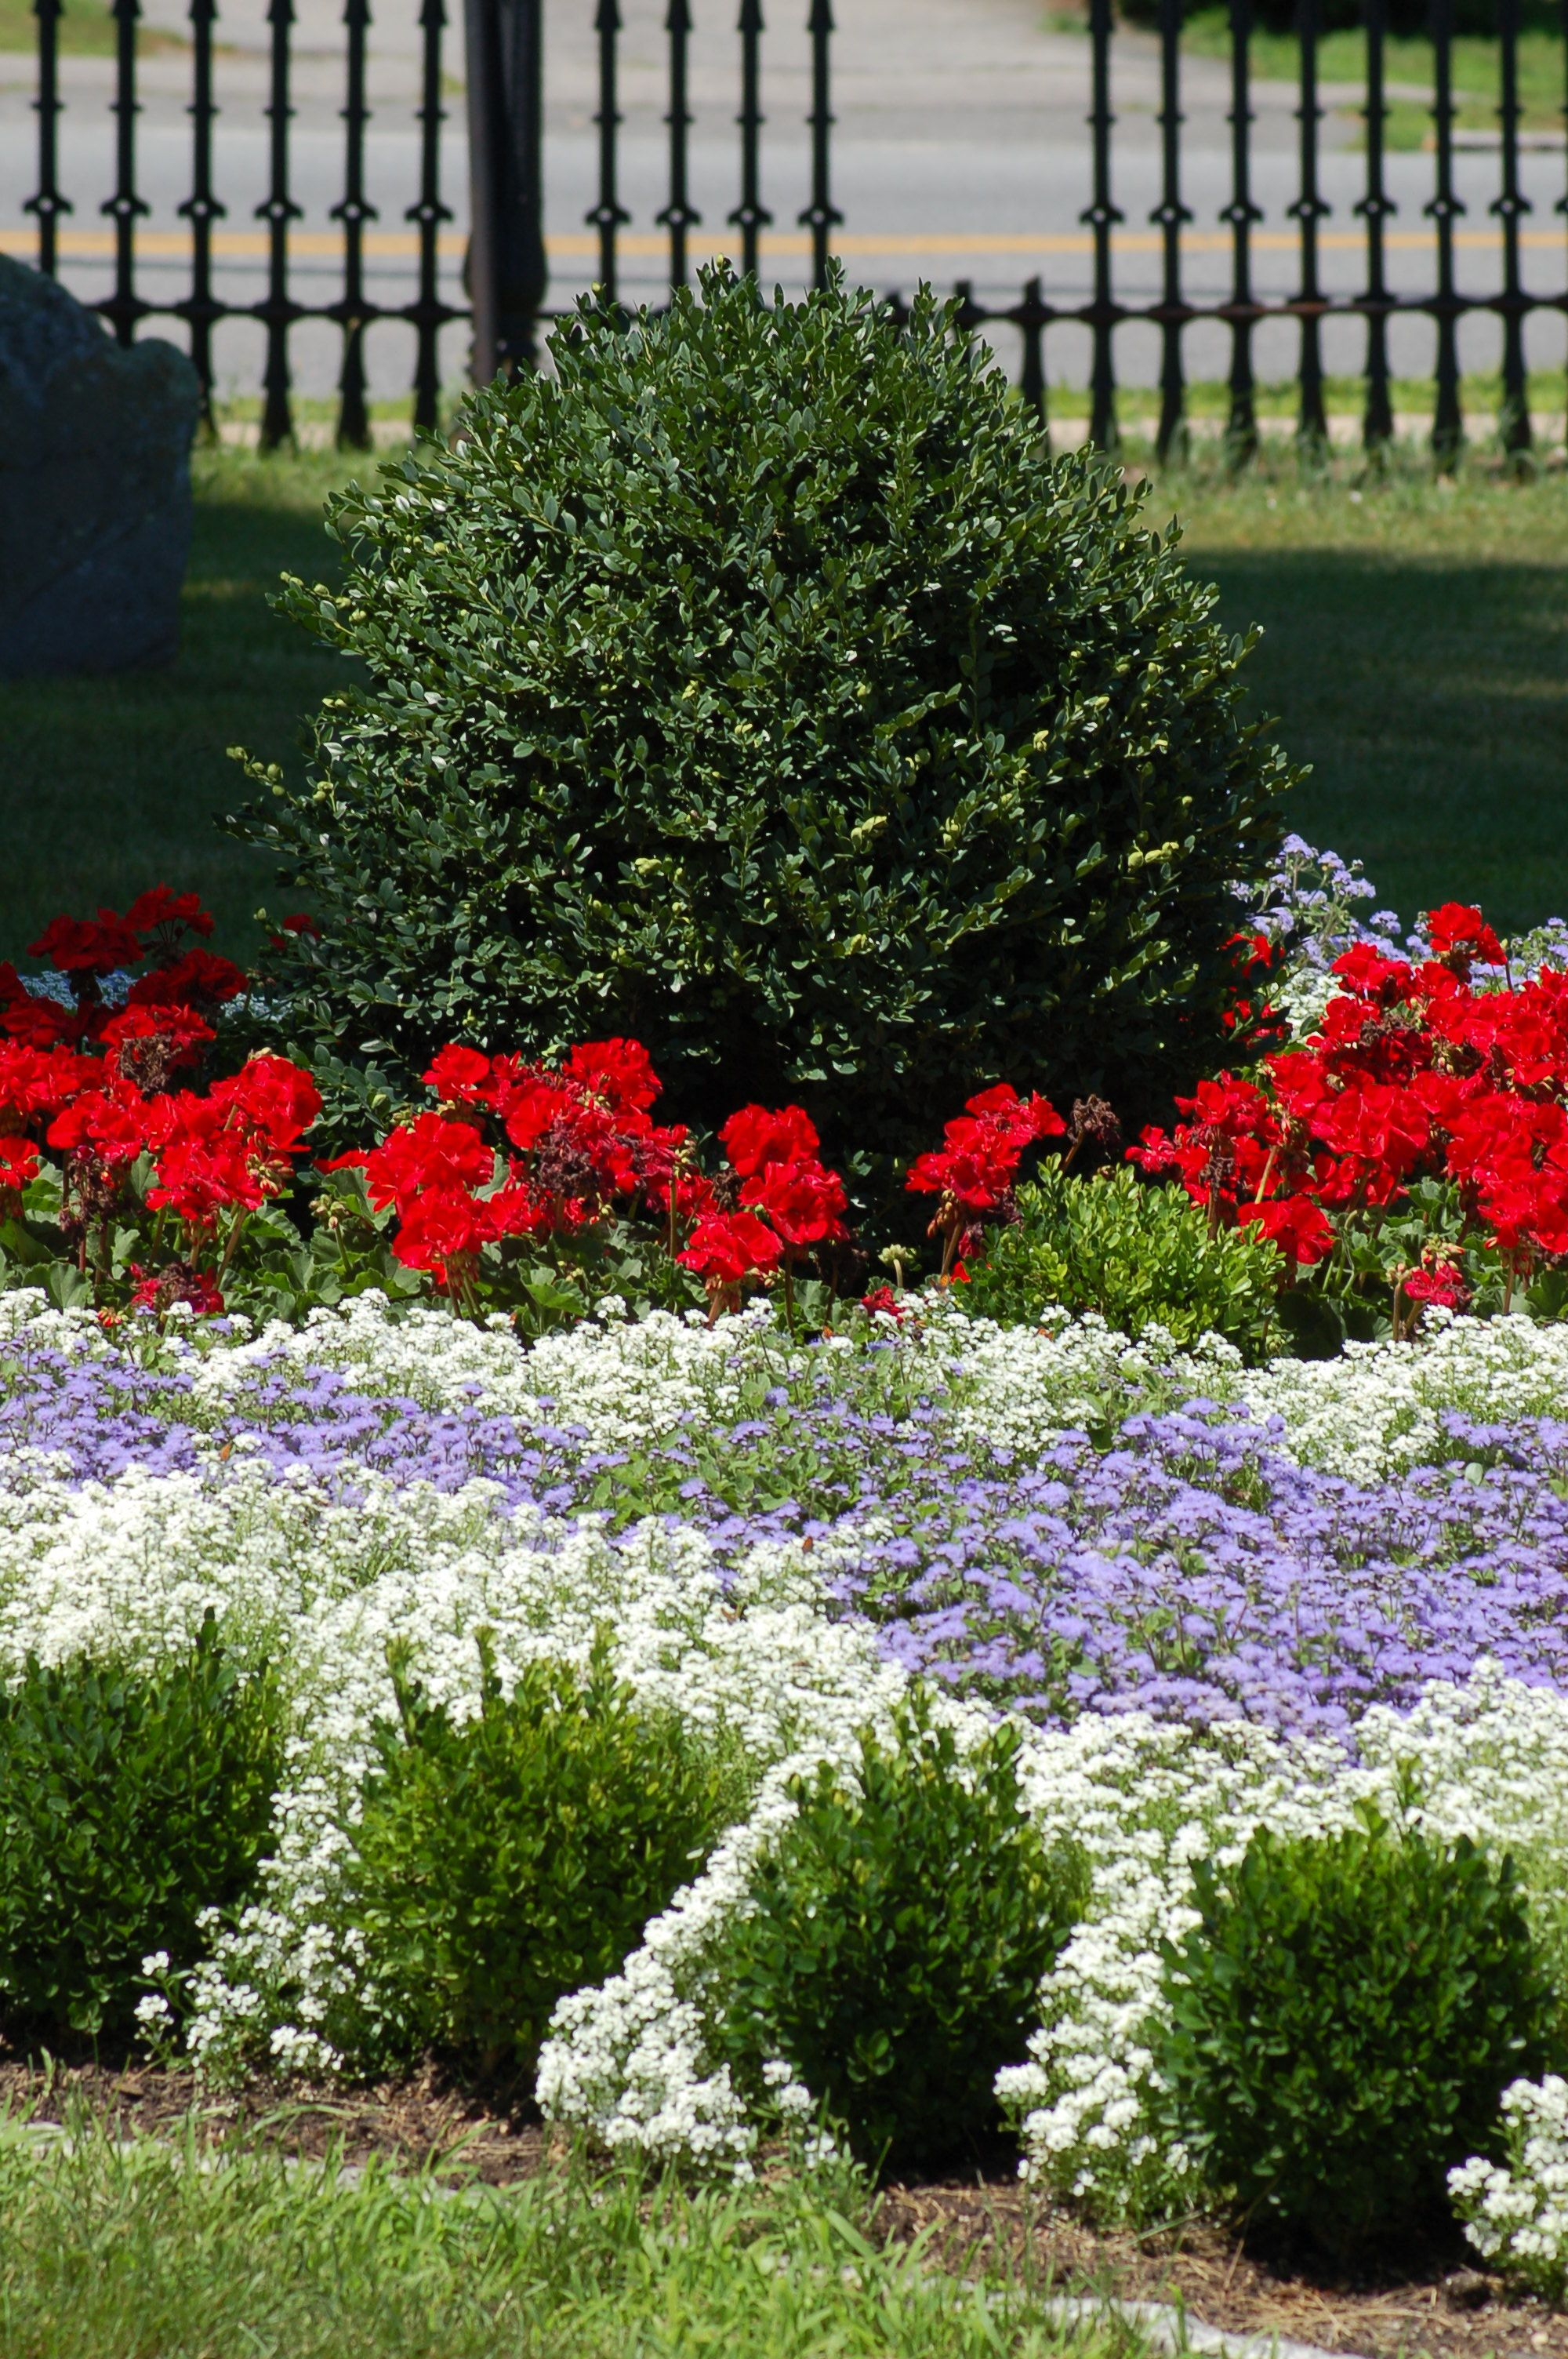 Best choices for red white and blue flowers red white blue with july 4 approaching some americans may be seeking ideas for red white and blue flower plantings this resource lists both common choices and more izmirmasajfo